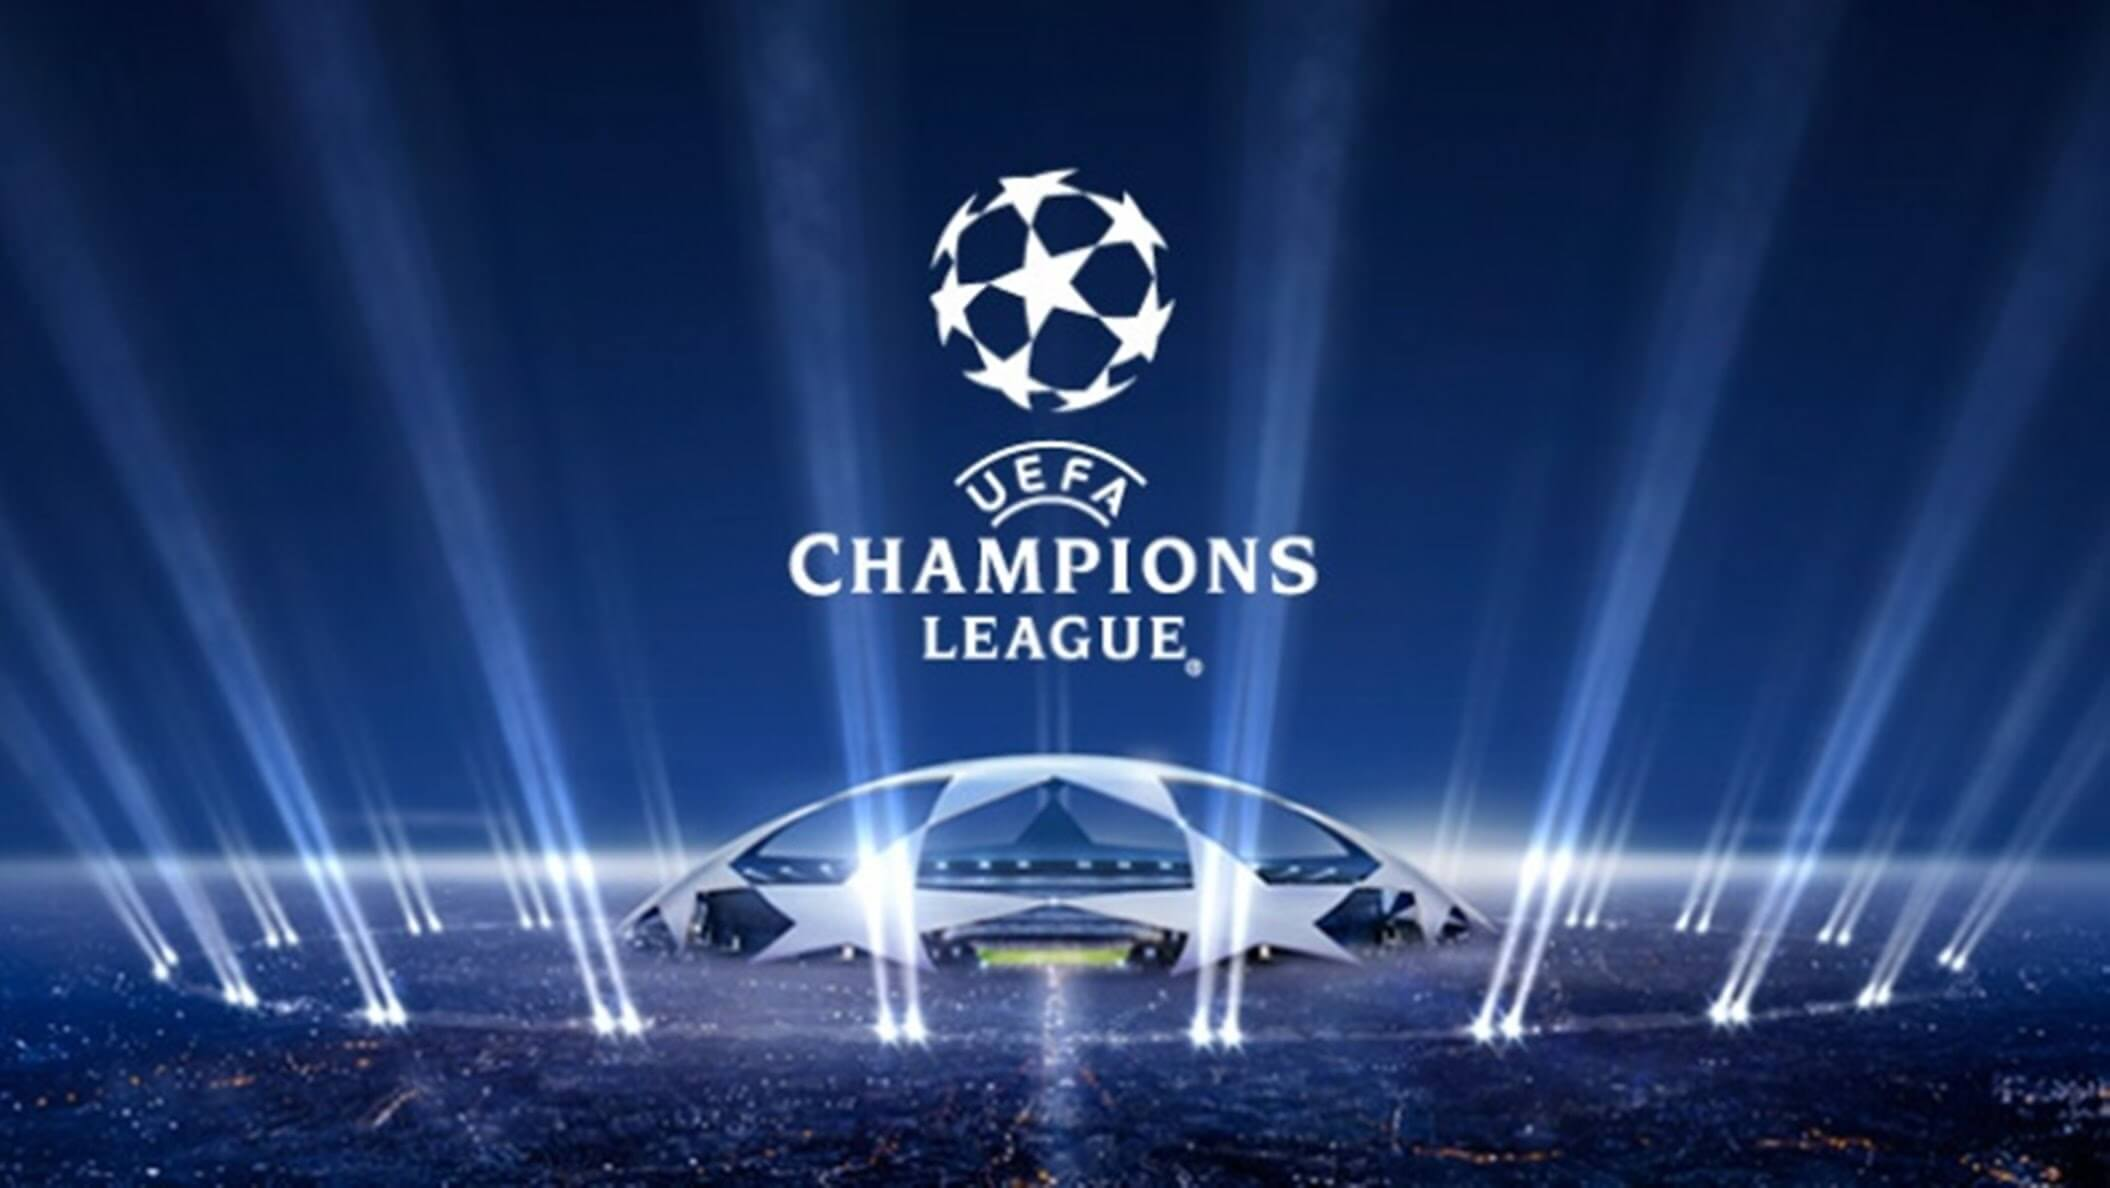 Champions League Review – Juventus – Barcelona / Leicester City – Atletico Madrid